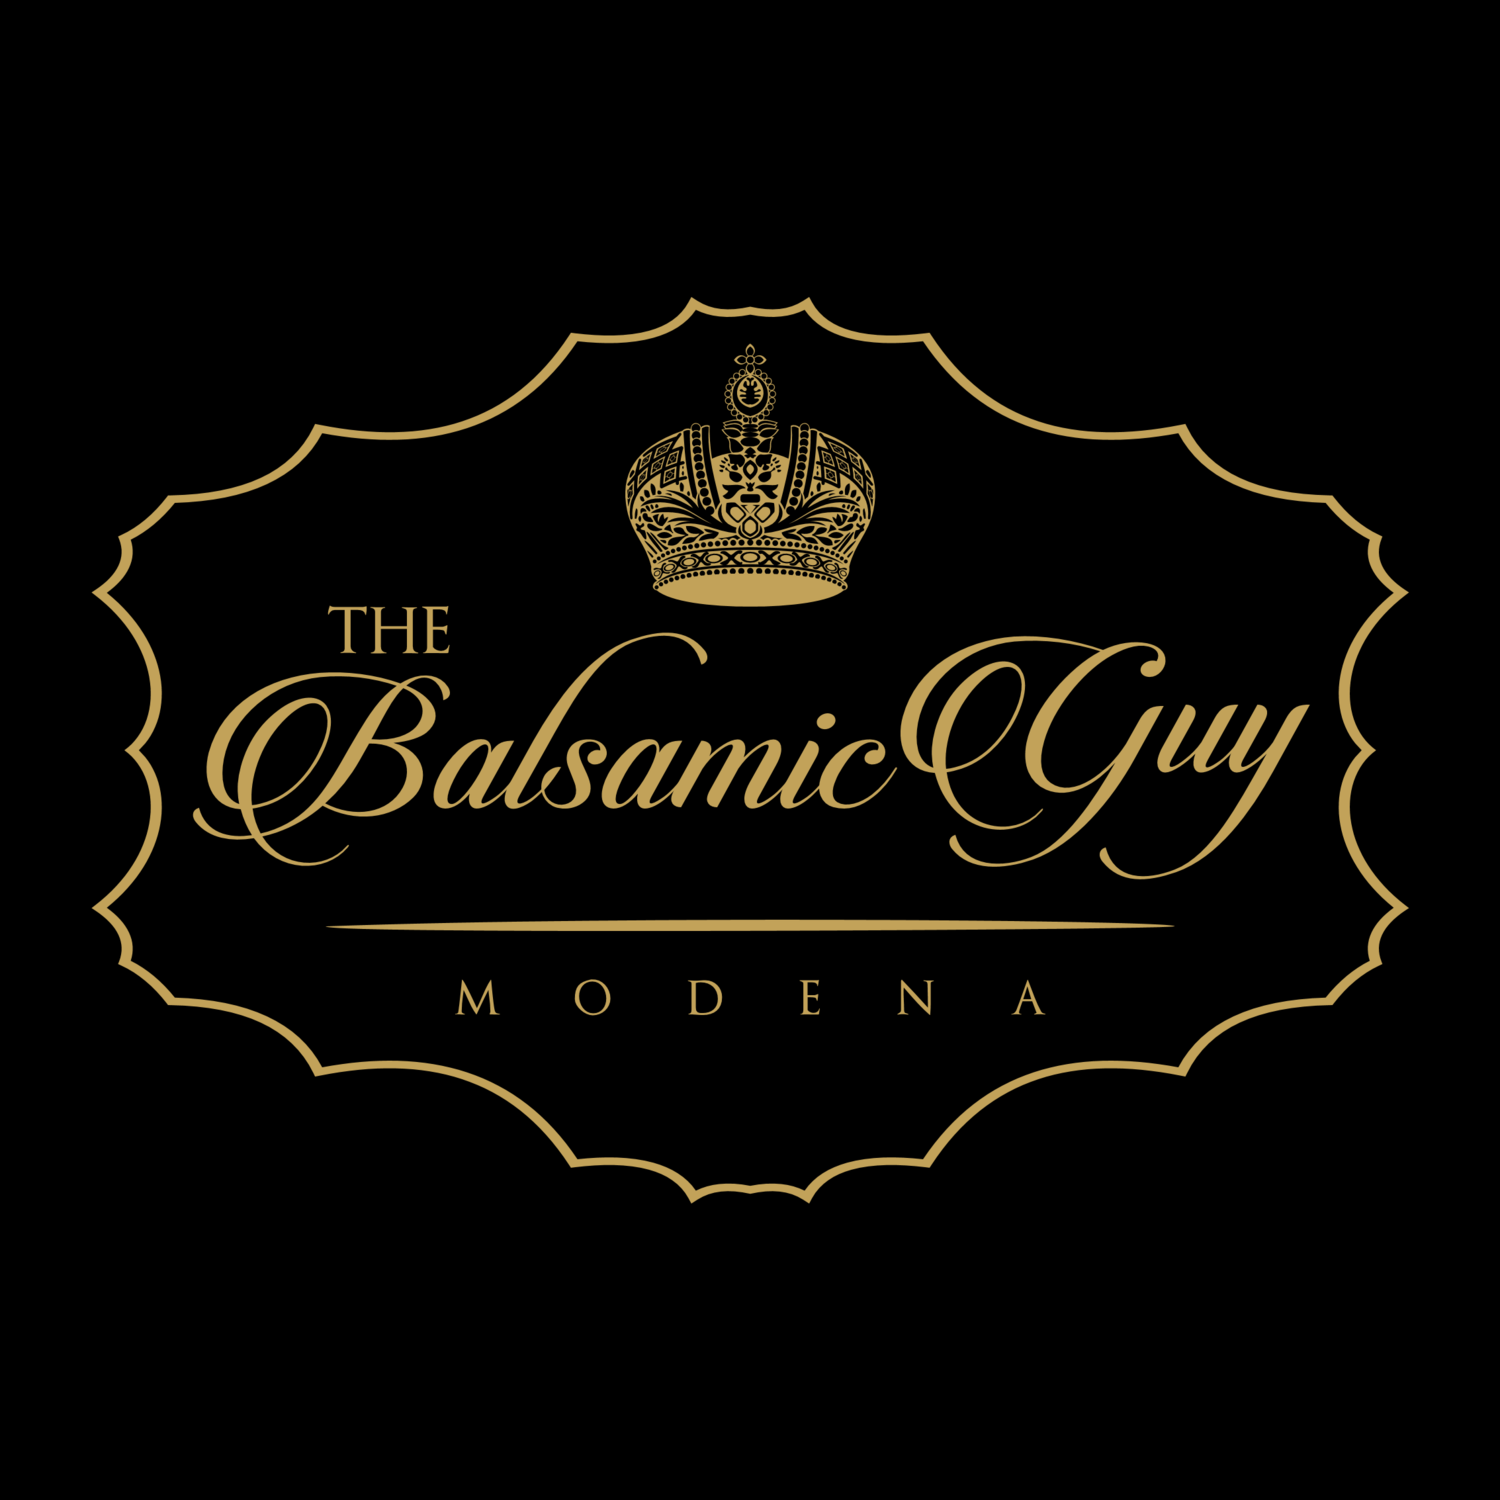 The Balsamic Guy